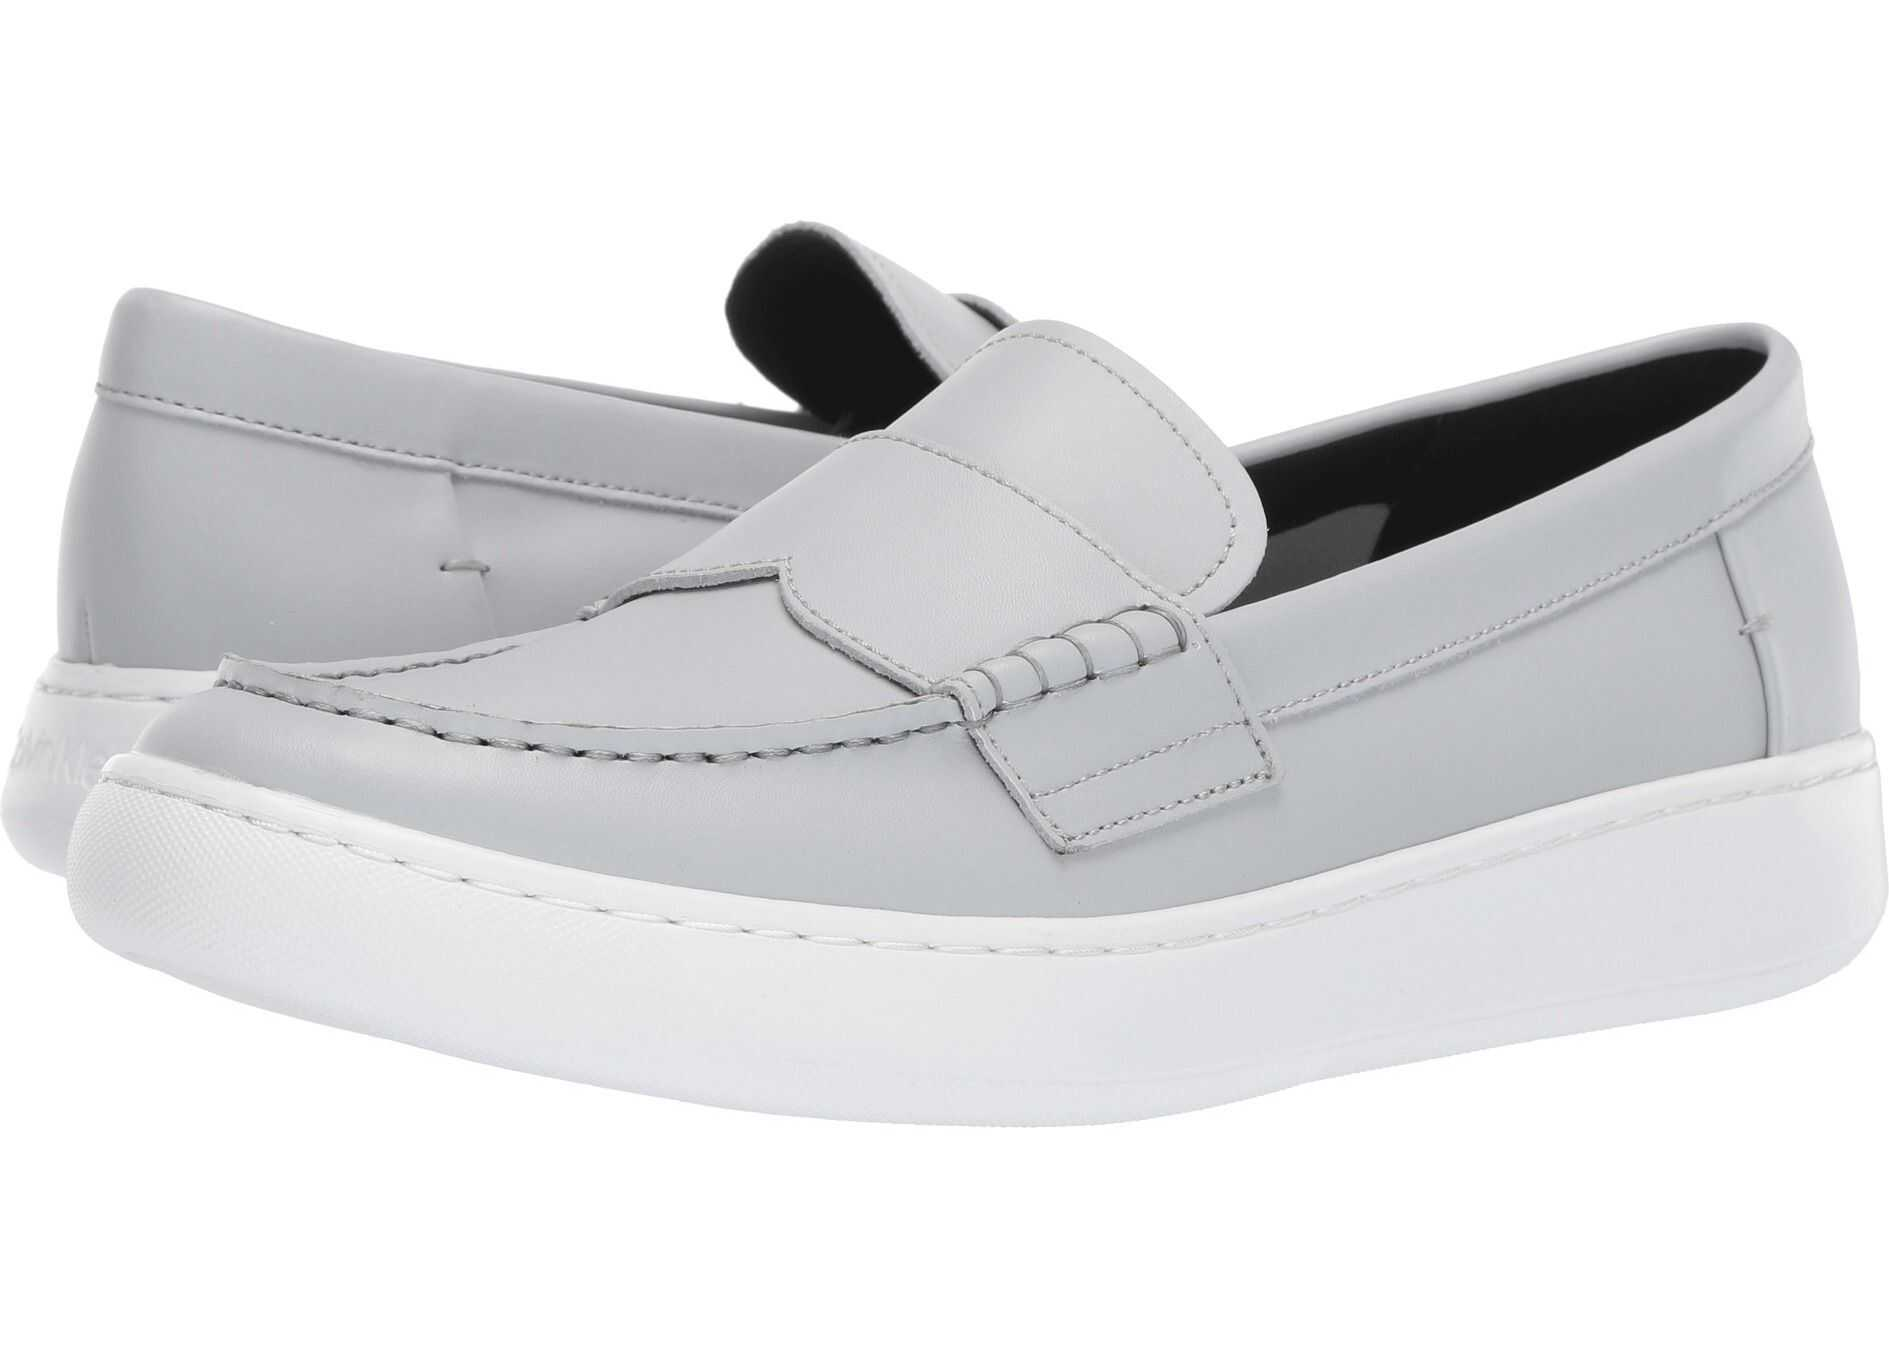 Calvin Klein Fang Blue/Grey Nappa Smooth Calf